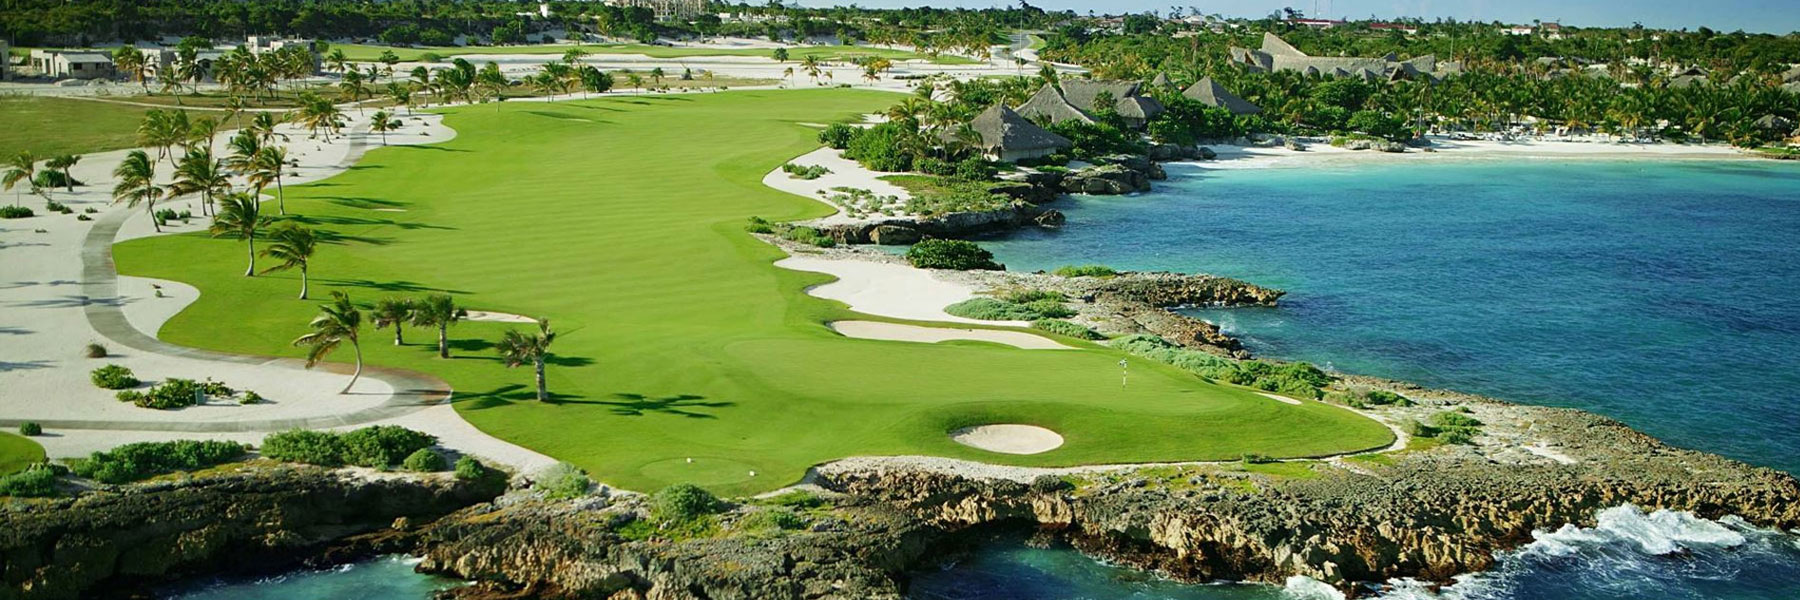 Dominican Republic Golf Vacation Packages